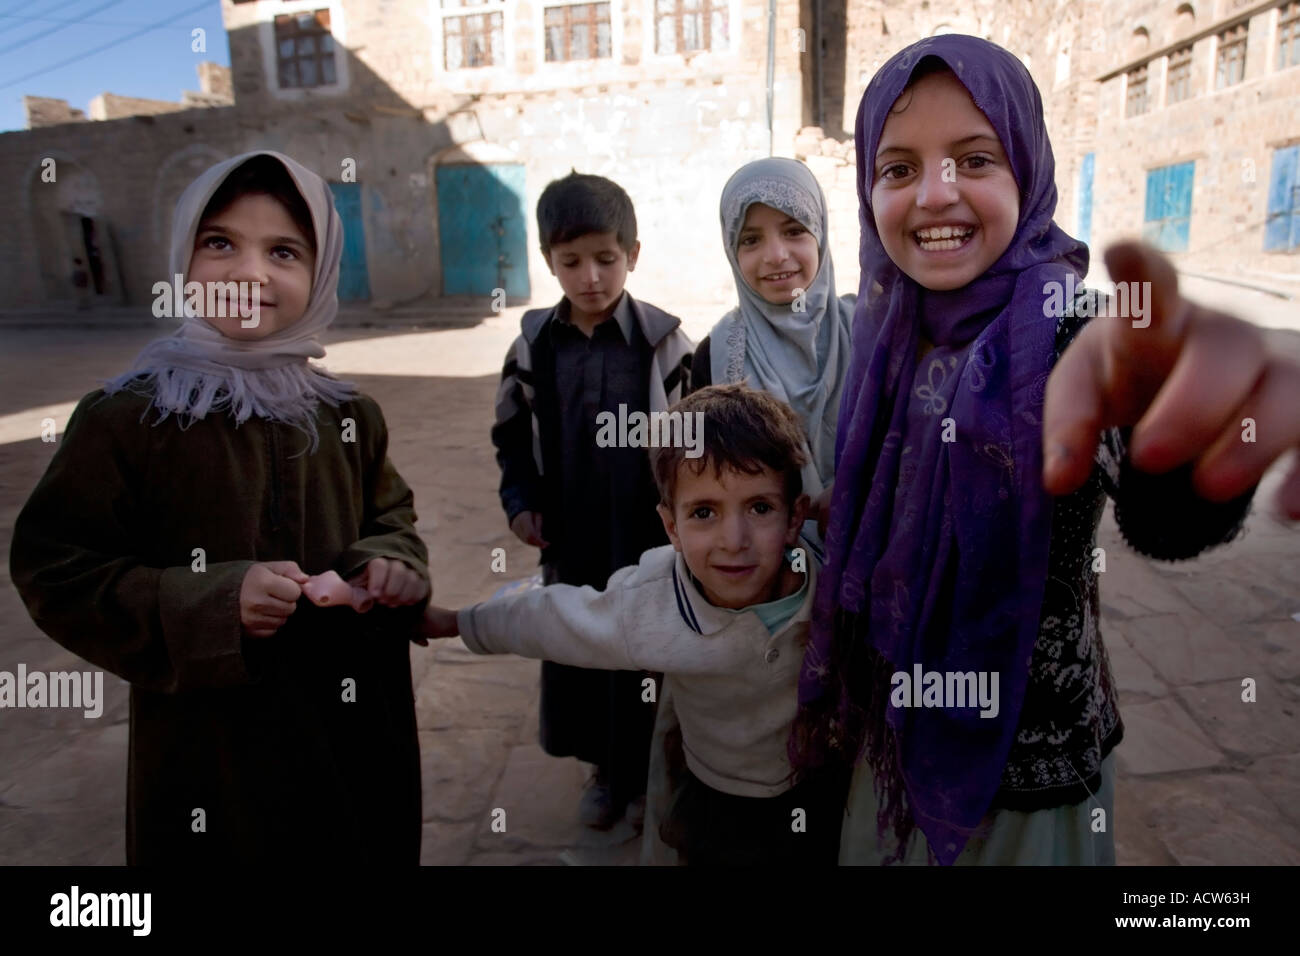 People along the streets of the old city of Thulla Yemen - Stock Image